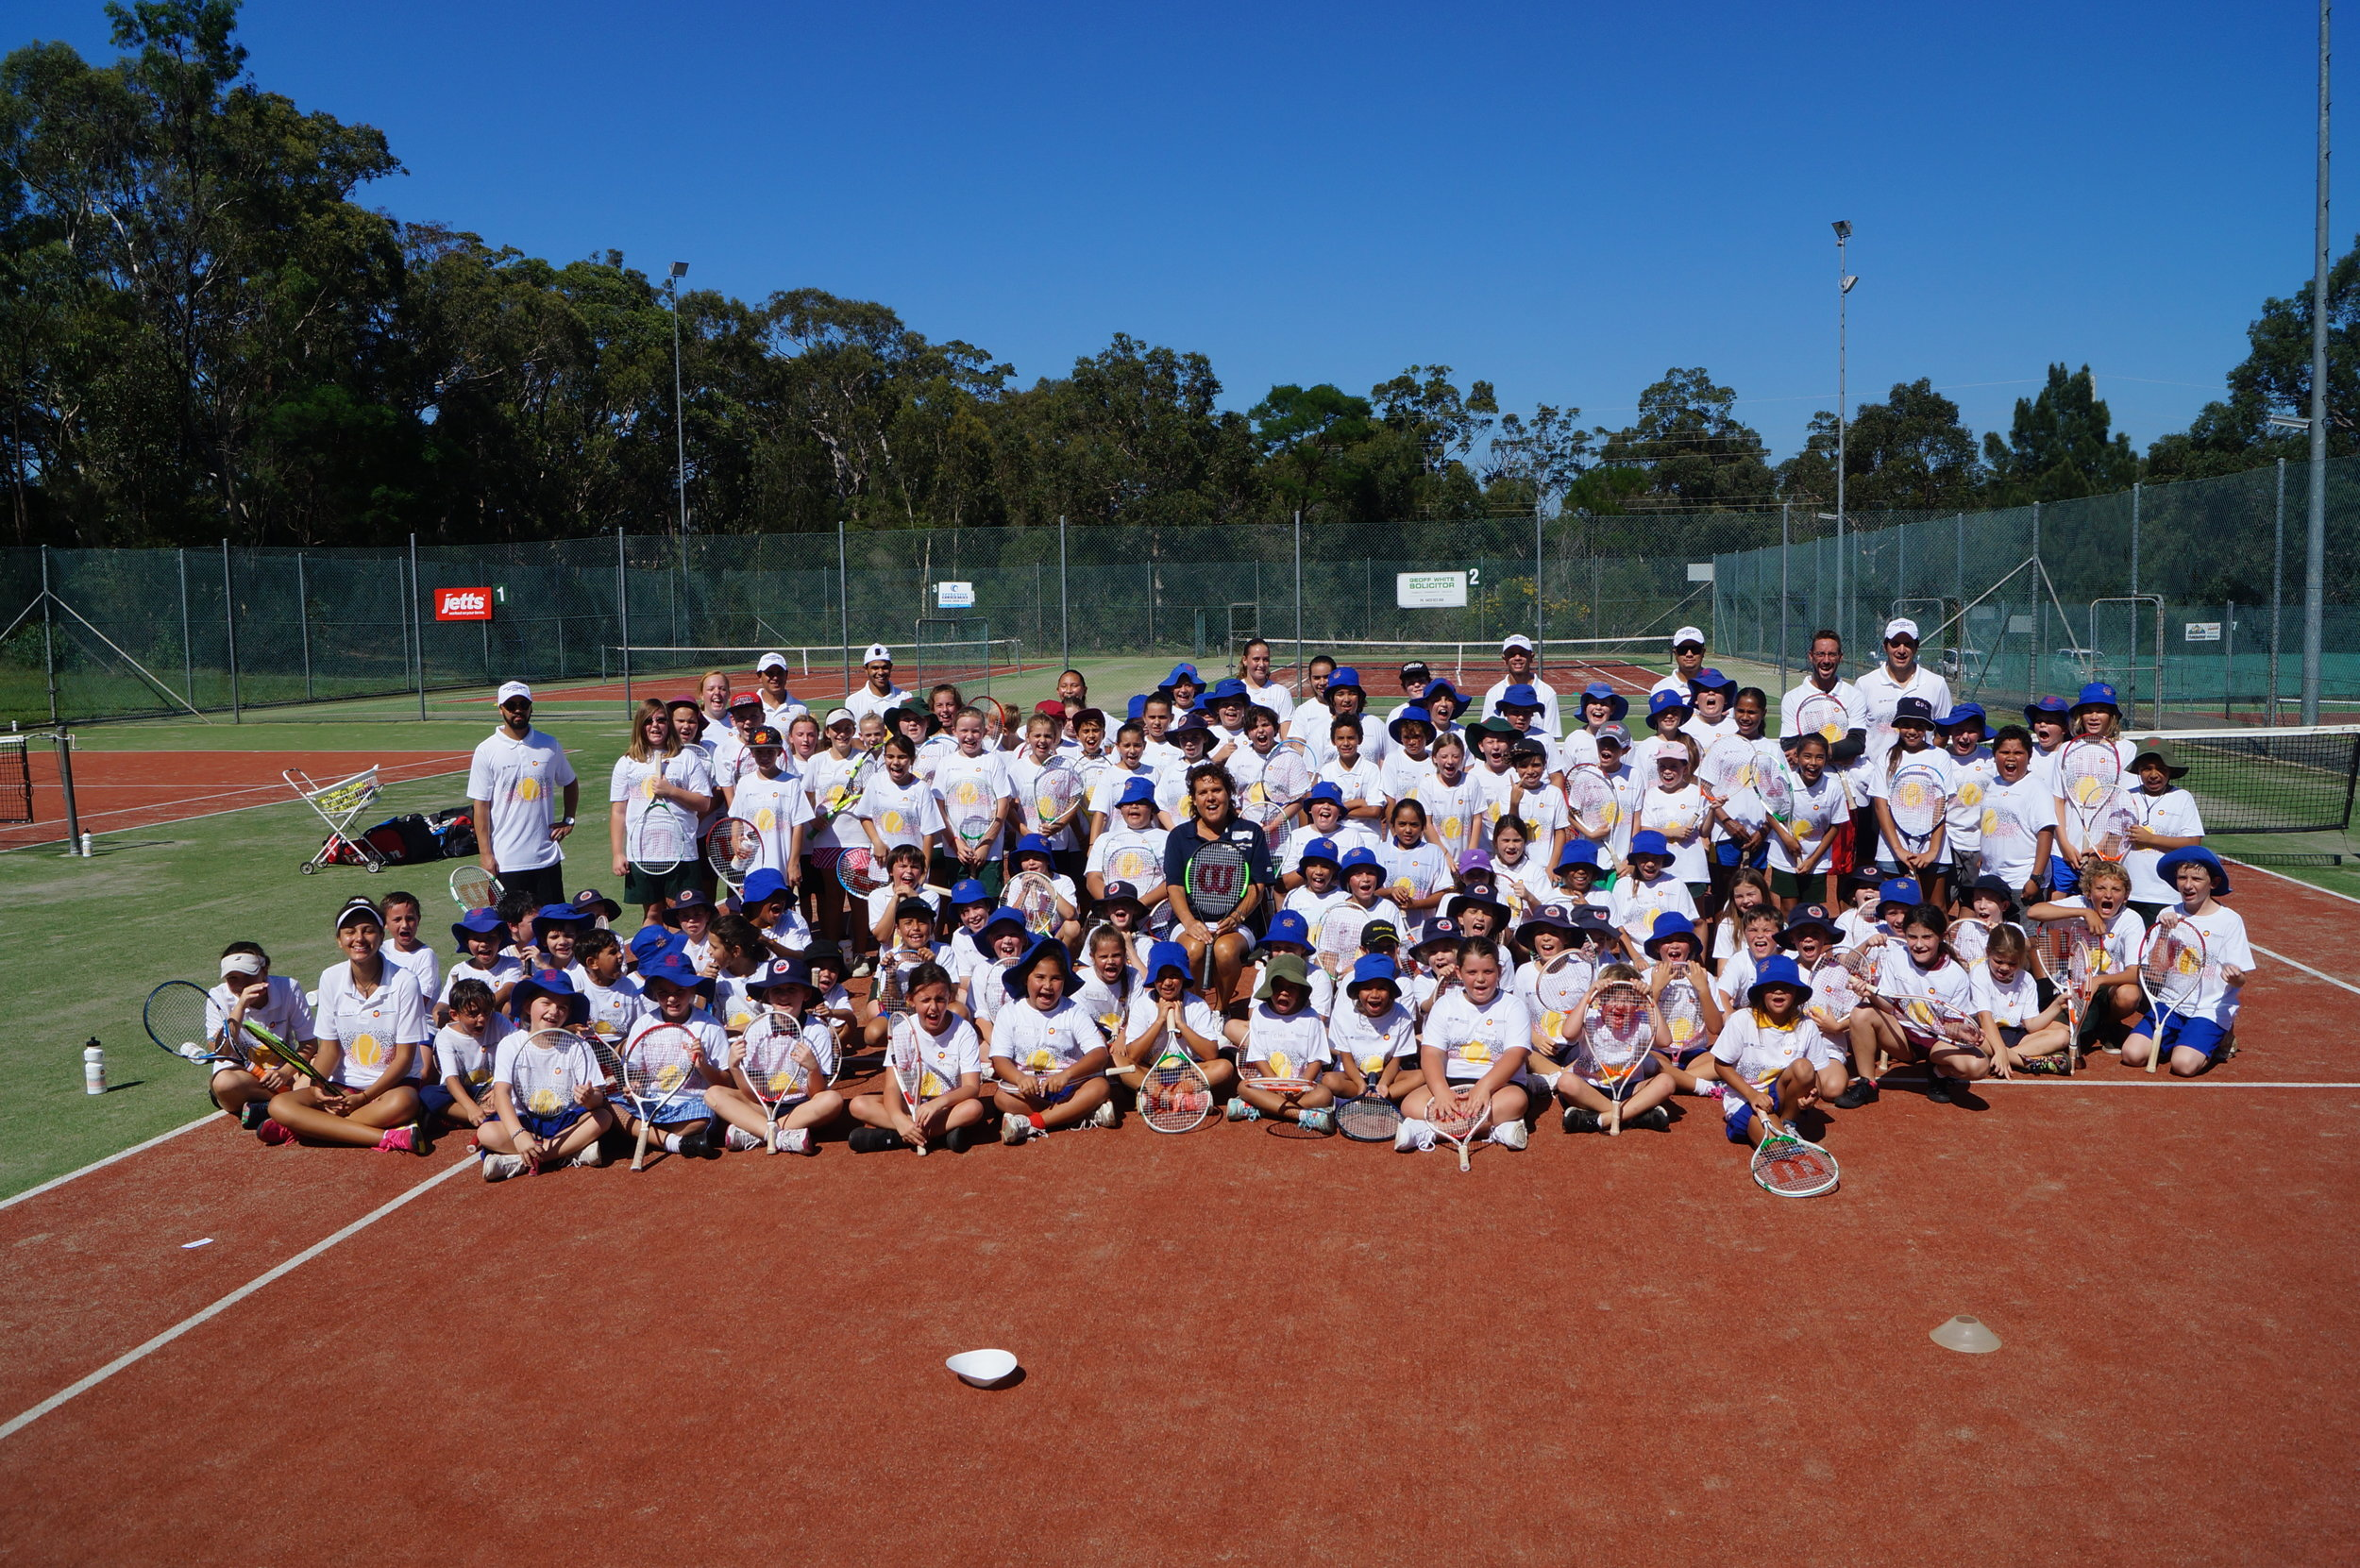 116 girls and boys enjoy the Nowra Come and Try Day, Special thanks to Kiwi and Col!